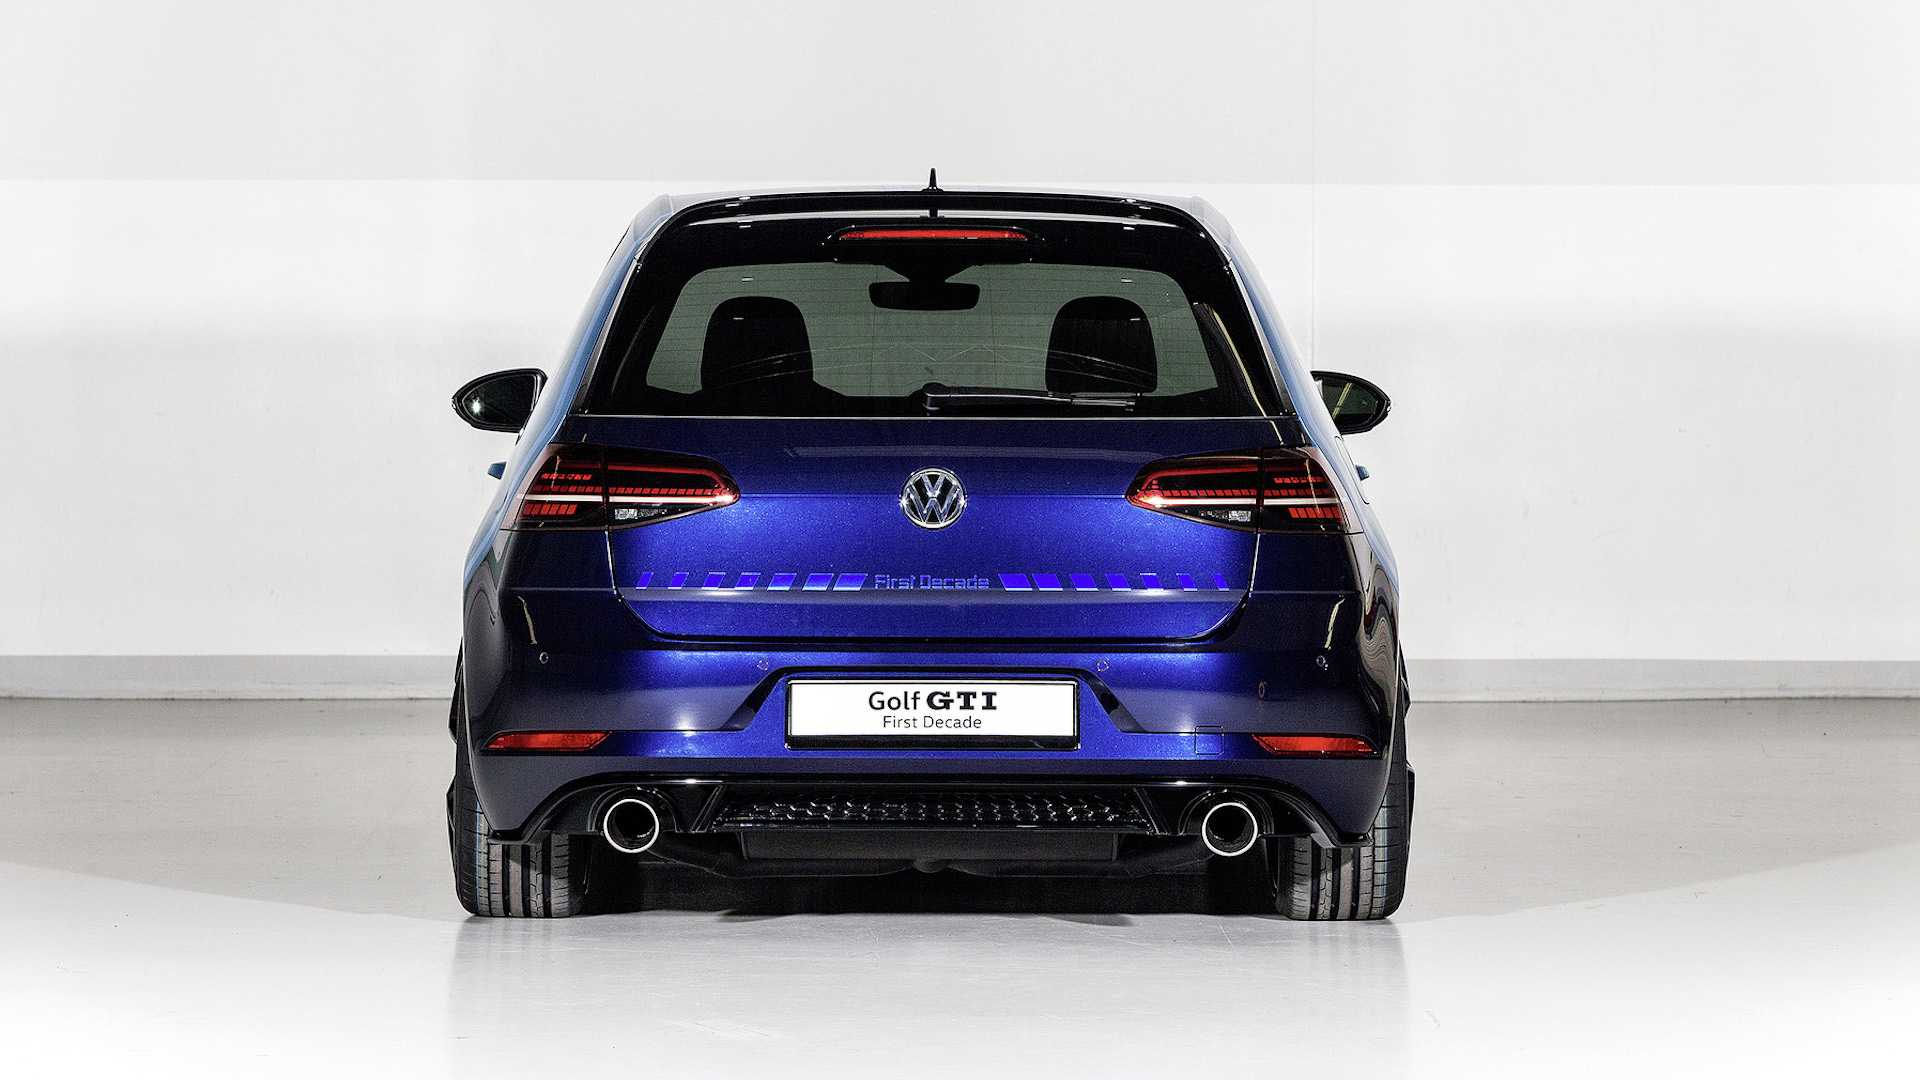 2018 Volkswagen Golf >> Volkswagen goes to Wörthersee 2017 with hybrid drive – Golf GTI First Decade, Golf GTE Estate ...